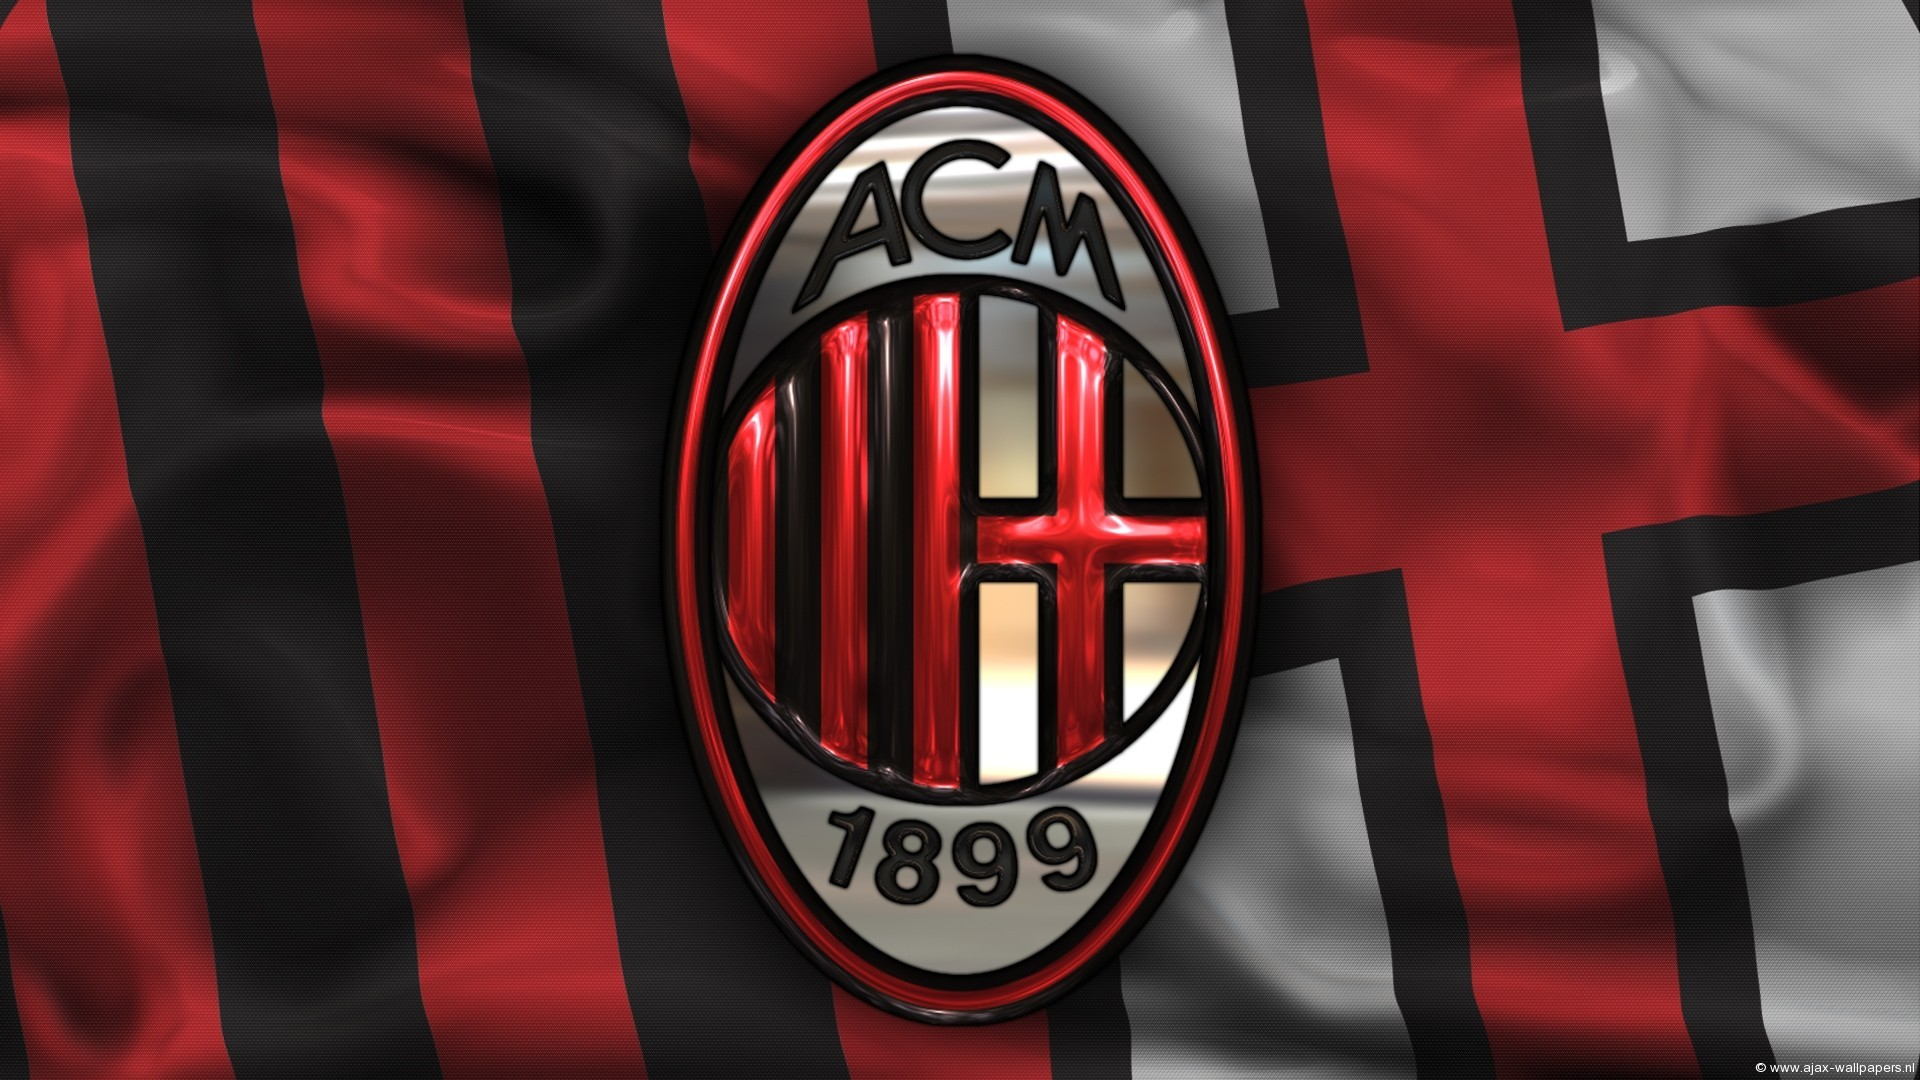 Ac Milan Wallpapers For Android1920 x 1080 pixels 1920x1080